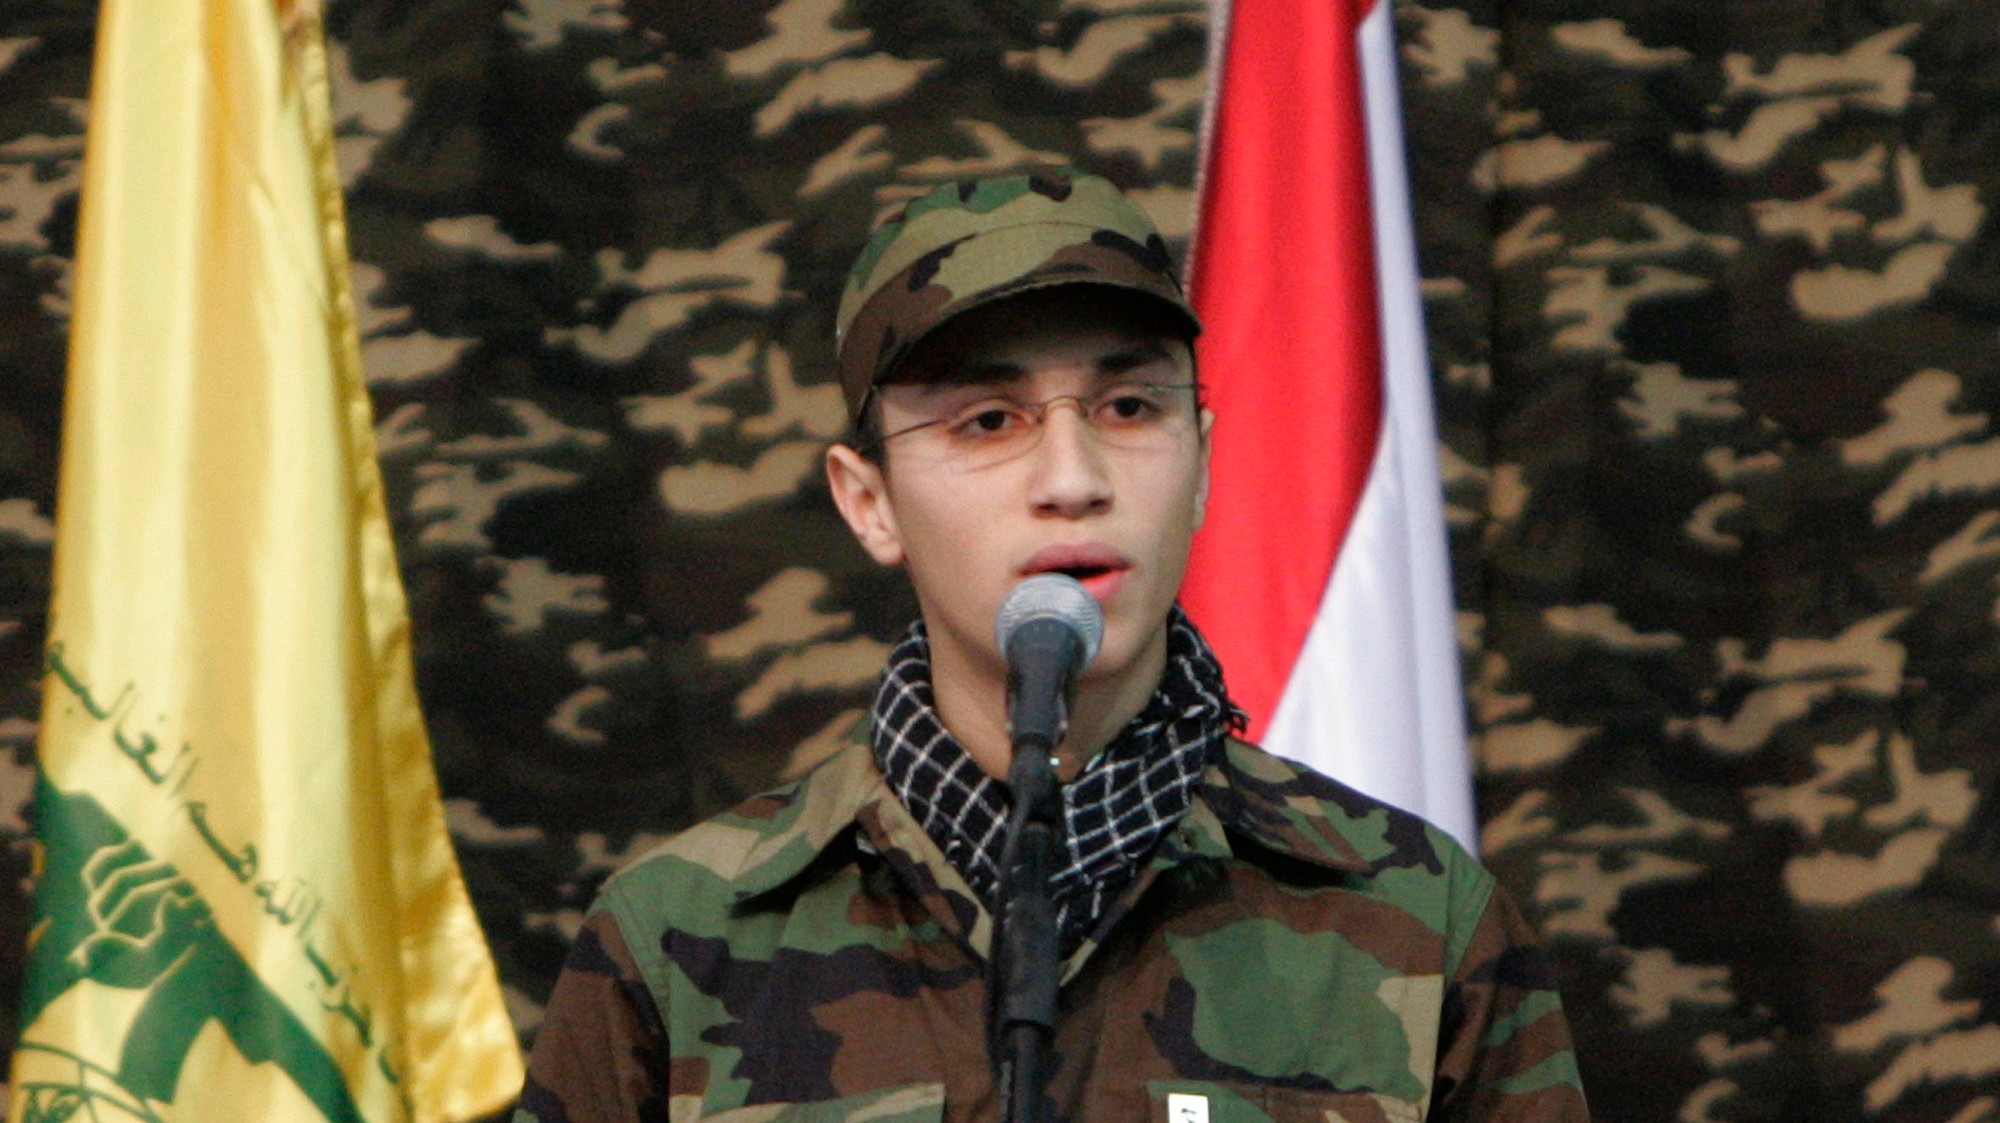 Israeli Airstrike in Syria Kills Son of Late Hezbollah Commander